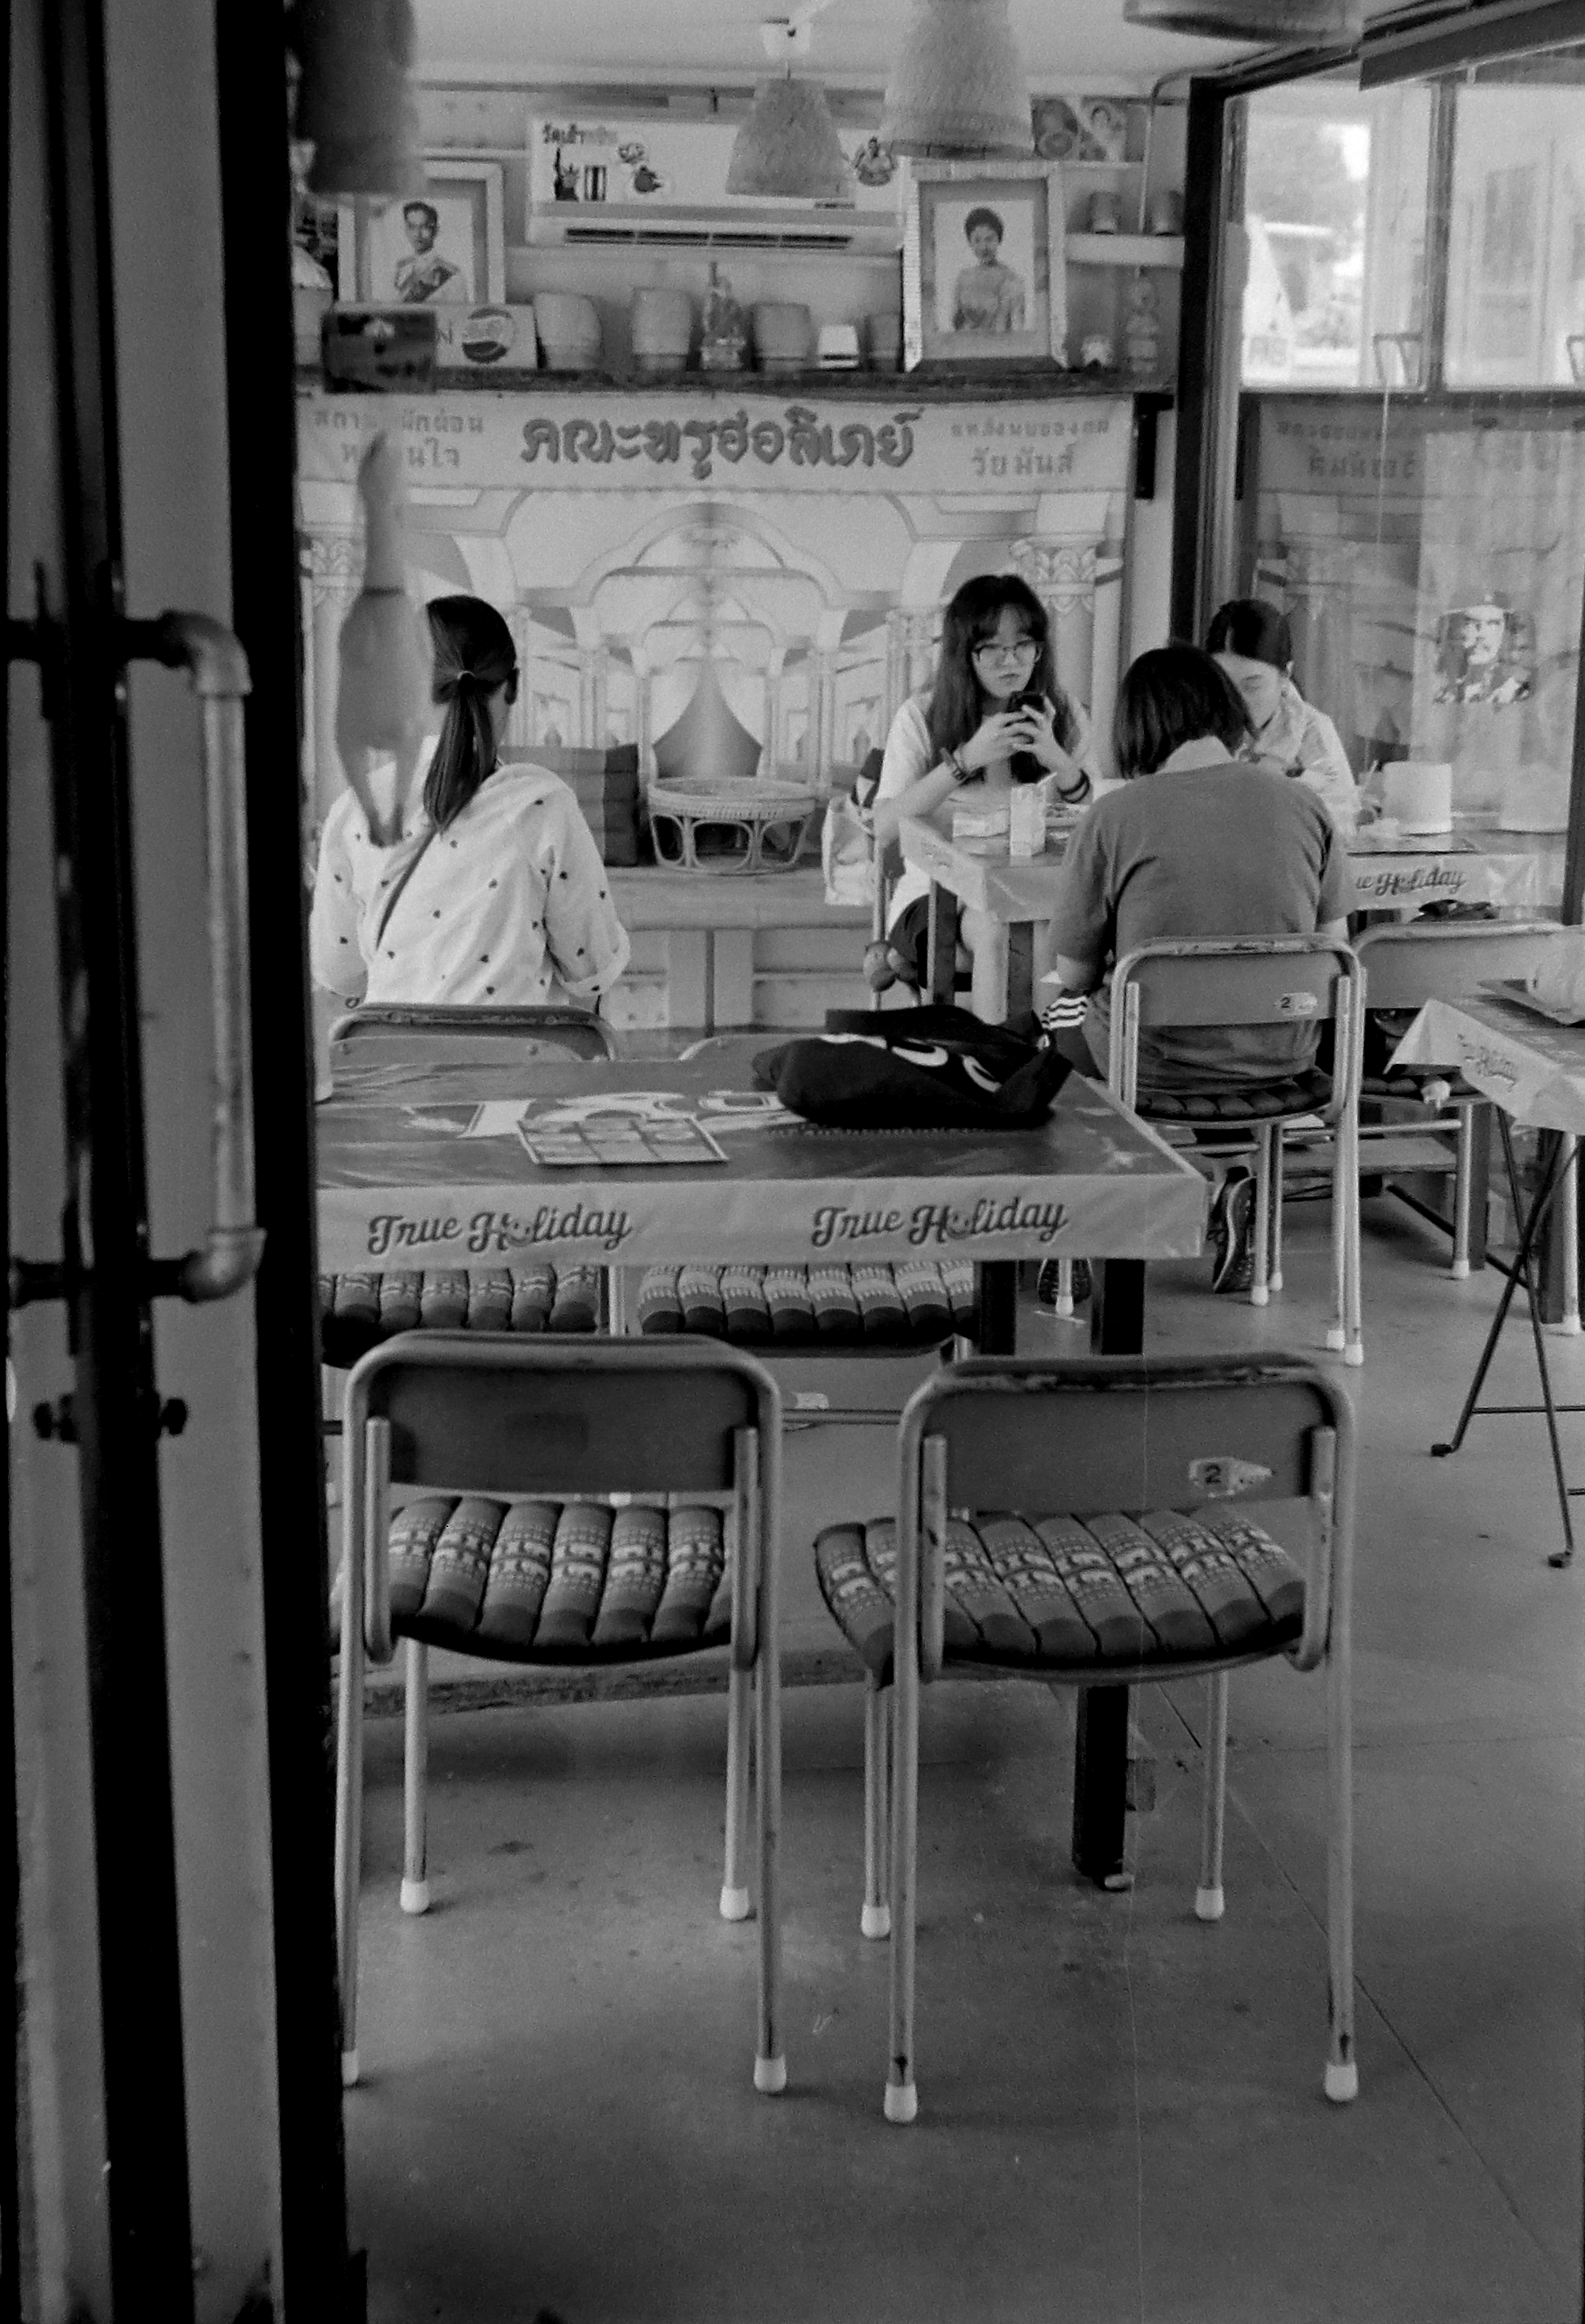 Chromacomaphoto bangkok airlab film photography tri x iso 400 leica m2 summicron rigid super angulon 21mm 50mm black and white thailand street  (10).JPG